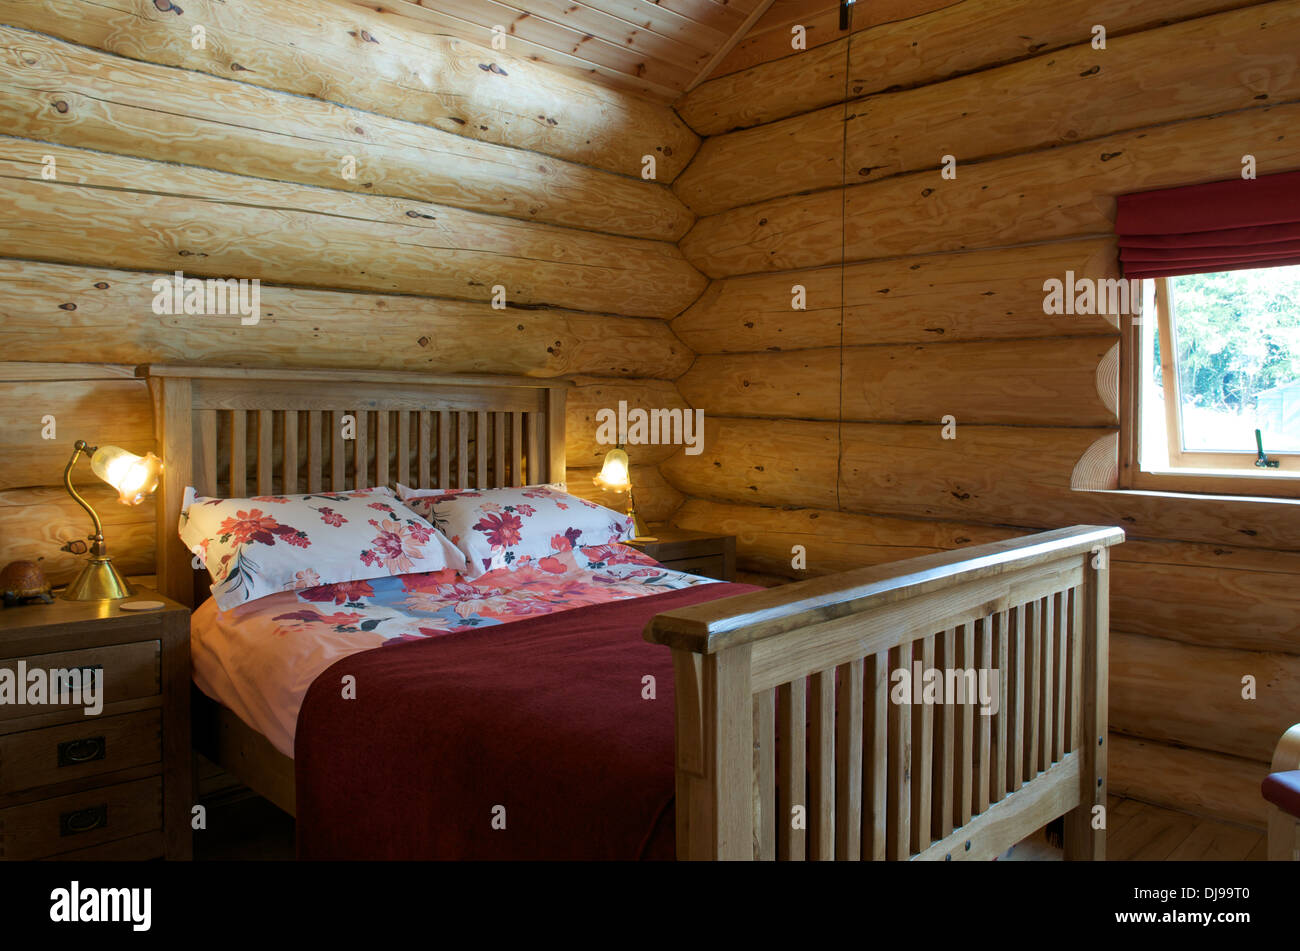 Bedroom in Eco Log Cabin, Shrophsire, UK - Stock Image